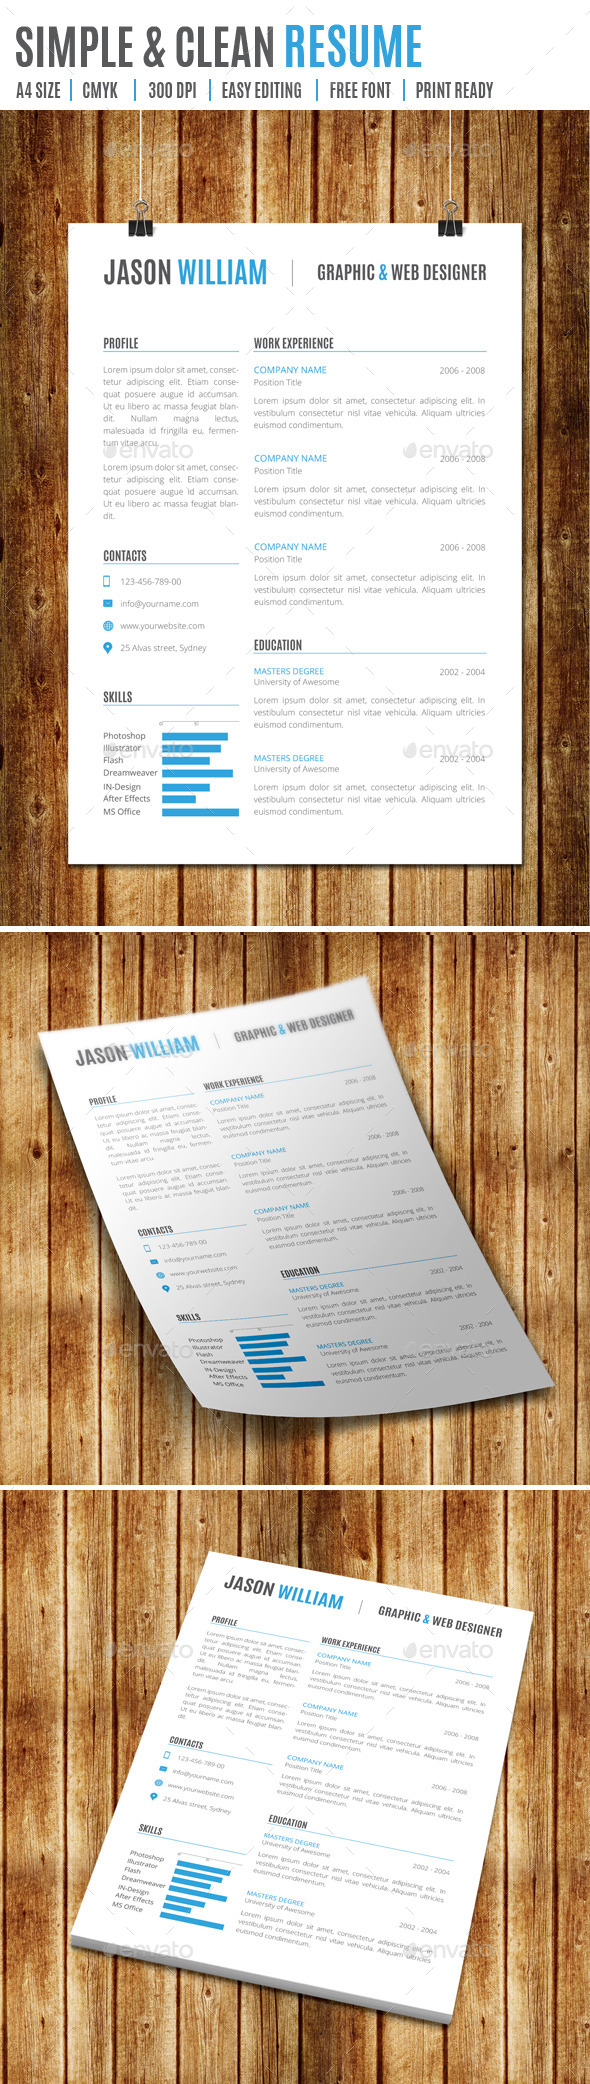 GraphicRiver Simple & Clean Resume 9194257